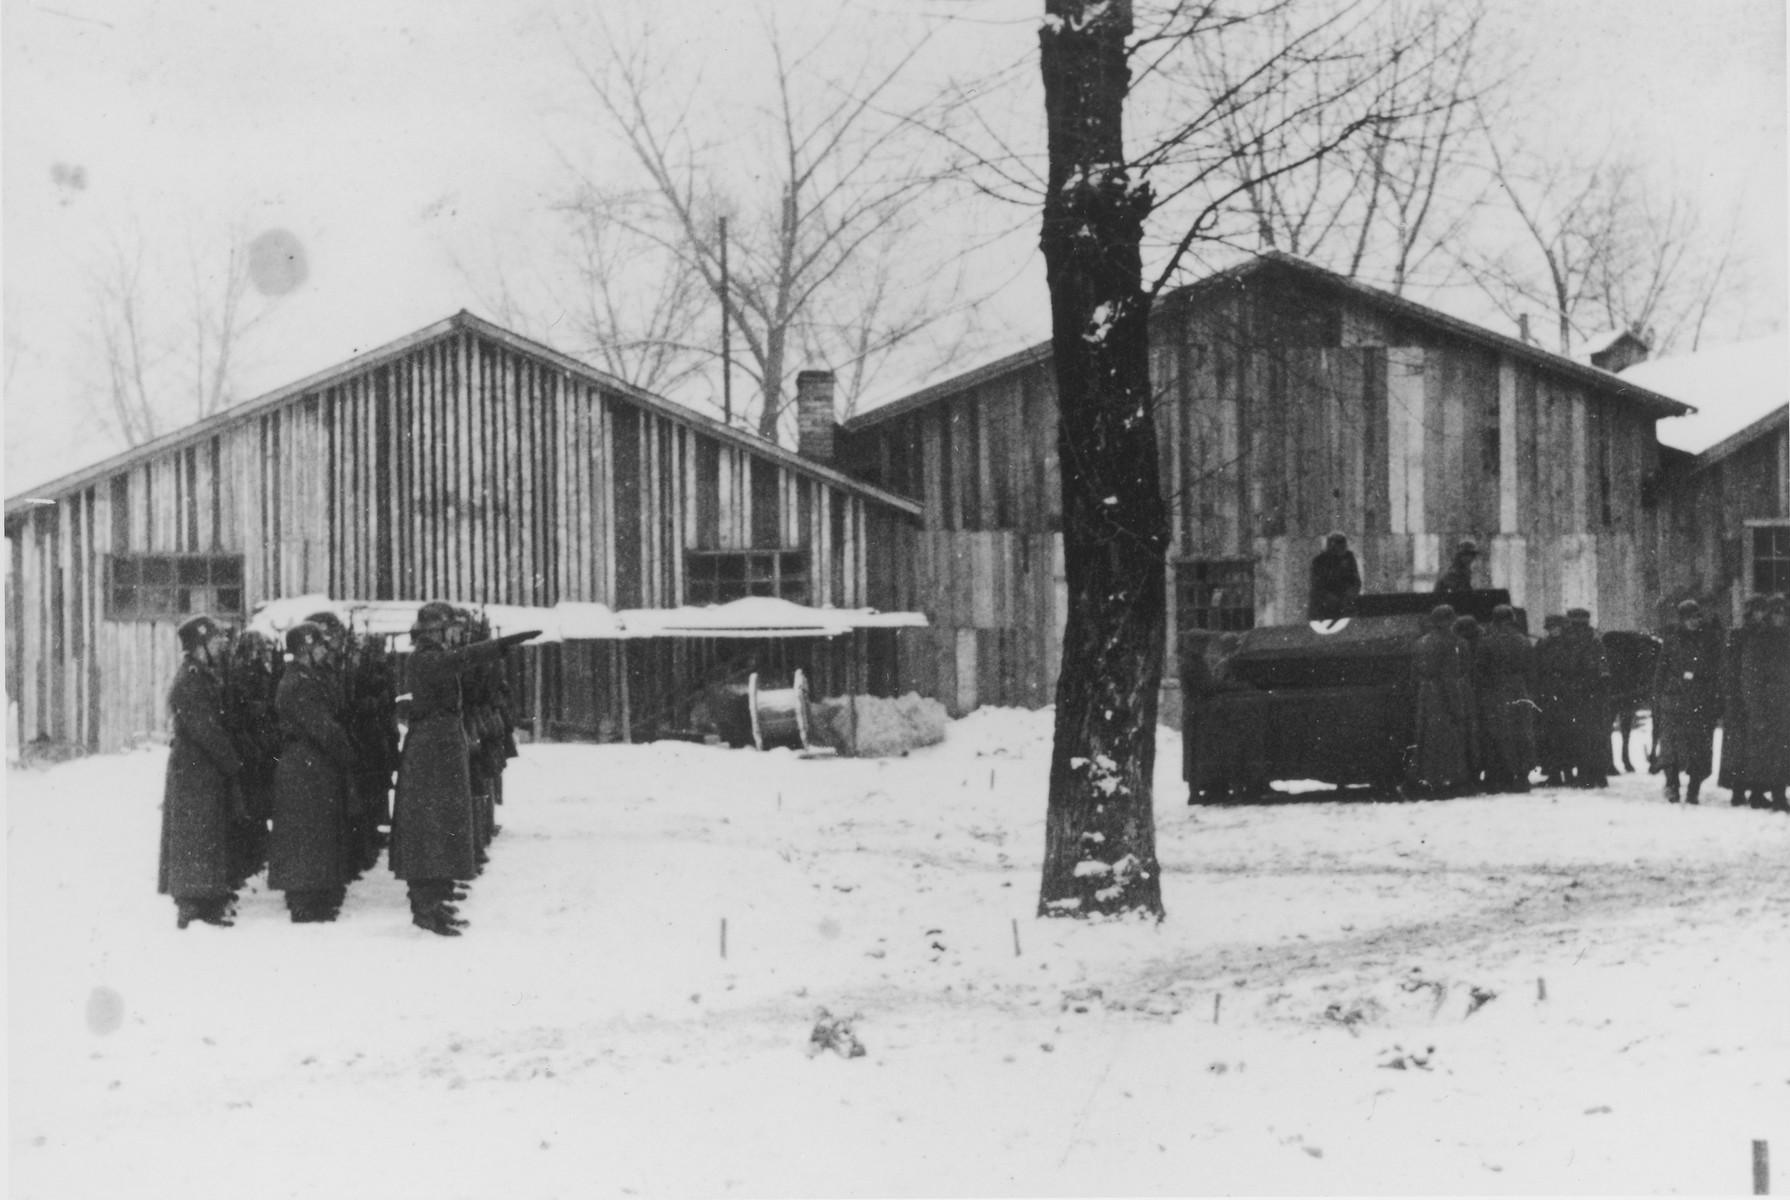 "Three rows of German soldiers stand at attention and salute during a military funeral in Auschwitz.  The original caption reads ""Beisetzung von SS Kameraden nach einem Terrorangriff.""  (Burying our SS comrades from a terror attack.)  [This probably is the aftermath of the December 26 bombing based on the snow on the ground but it could also be September 13th bombing of IG Farben in which 15 SS men died in the SS residential blocks and 28 were seriously wounded.]"